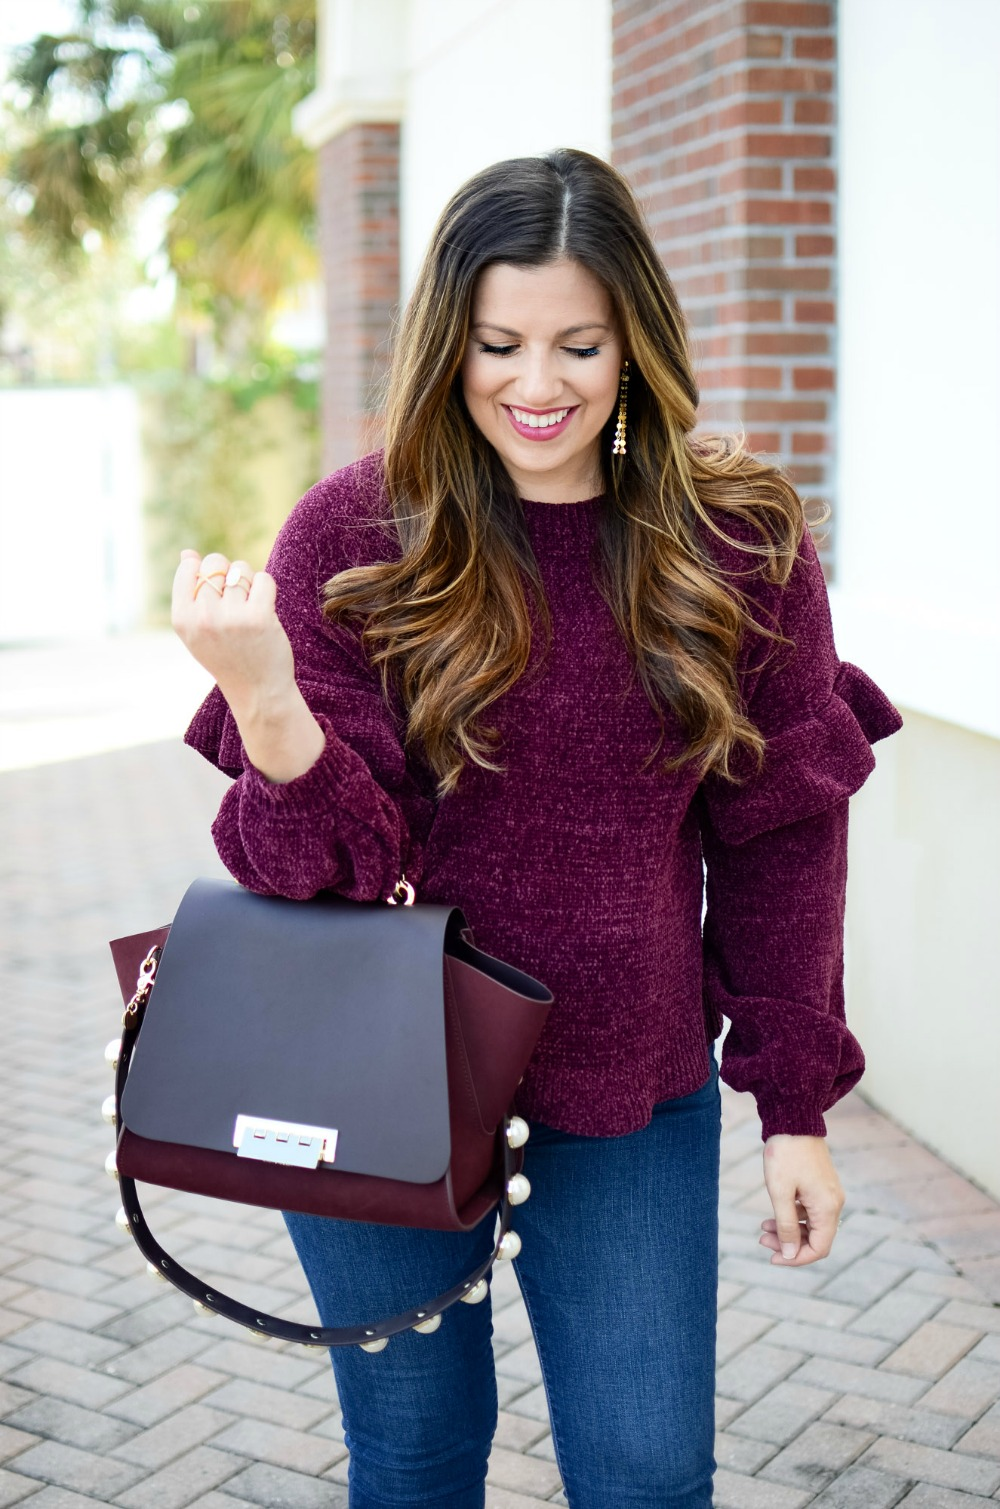 Ruffle Sleeve Chenille Sweater worn by Jaime Cittadino of Sunflowers and Stilettos blog